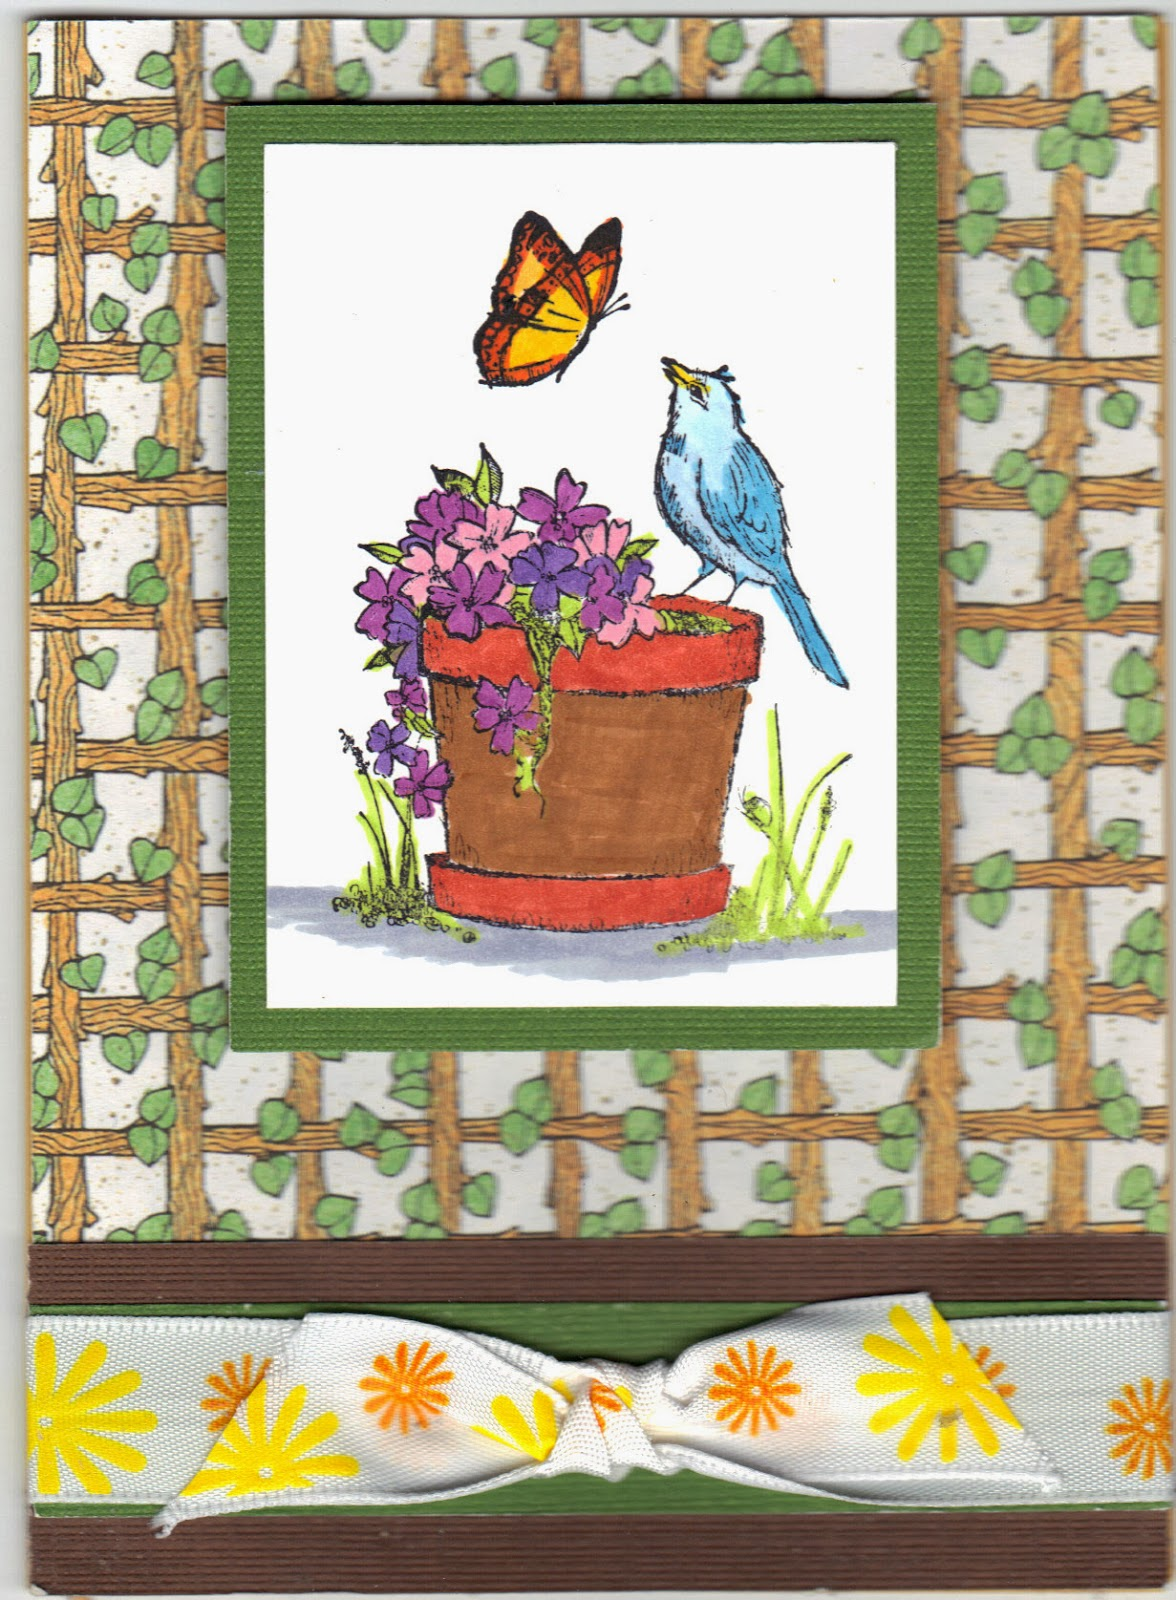 https://www.craftfoxes.com/shop/bearyamazing-s-shop-flower-bird-butterfly-handmade-card#